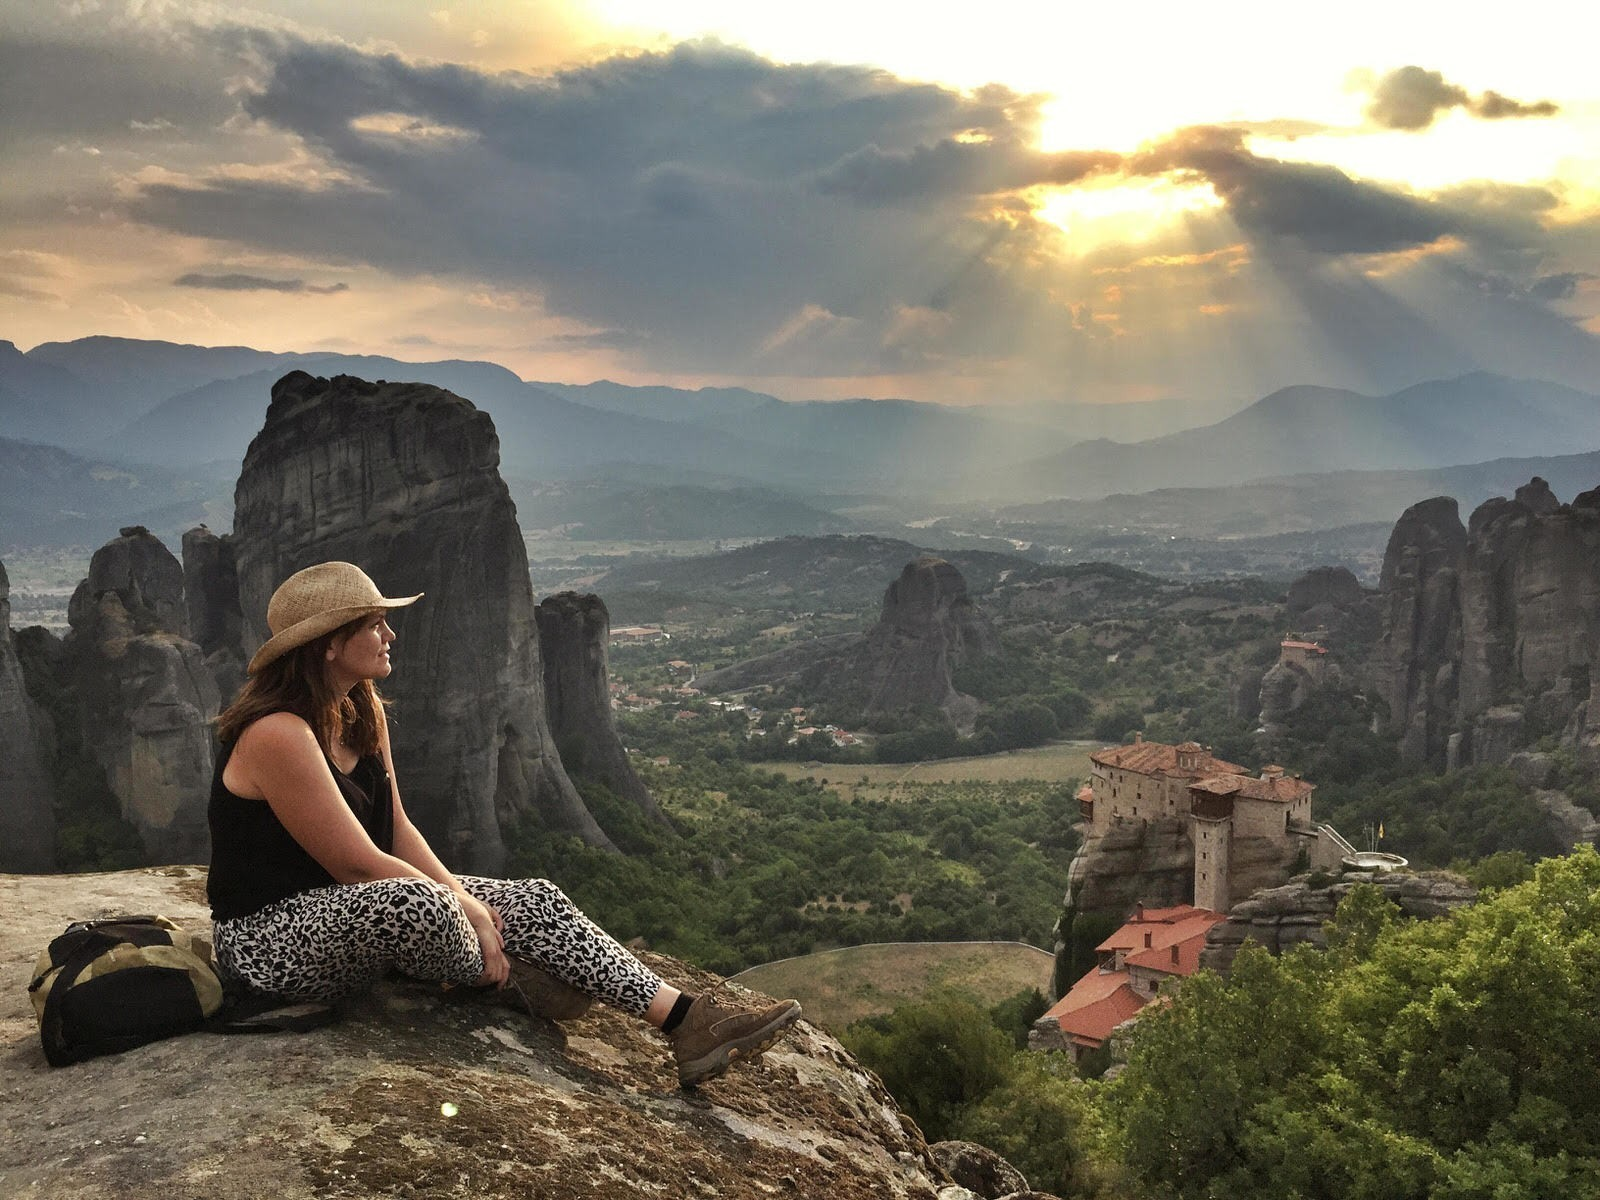 Travel addicts: where we've been and why we can't stop